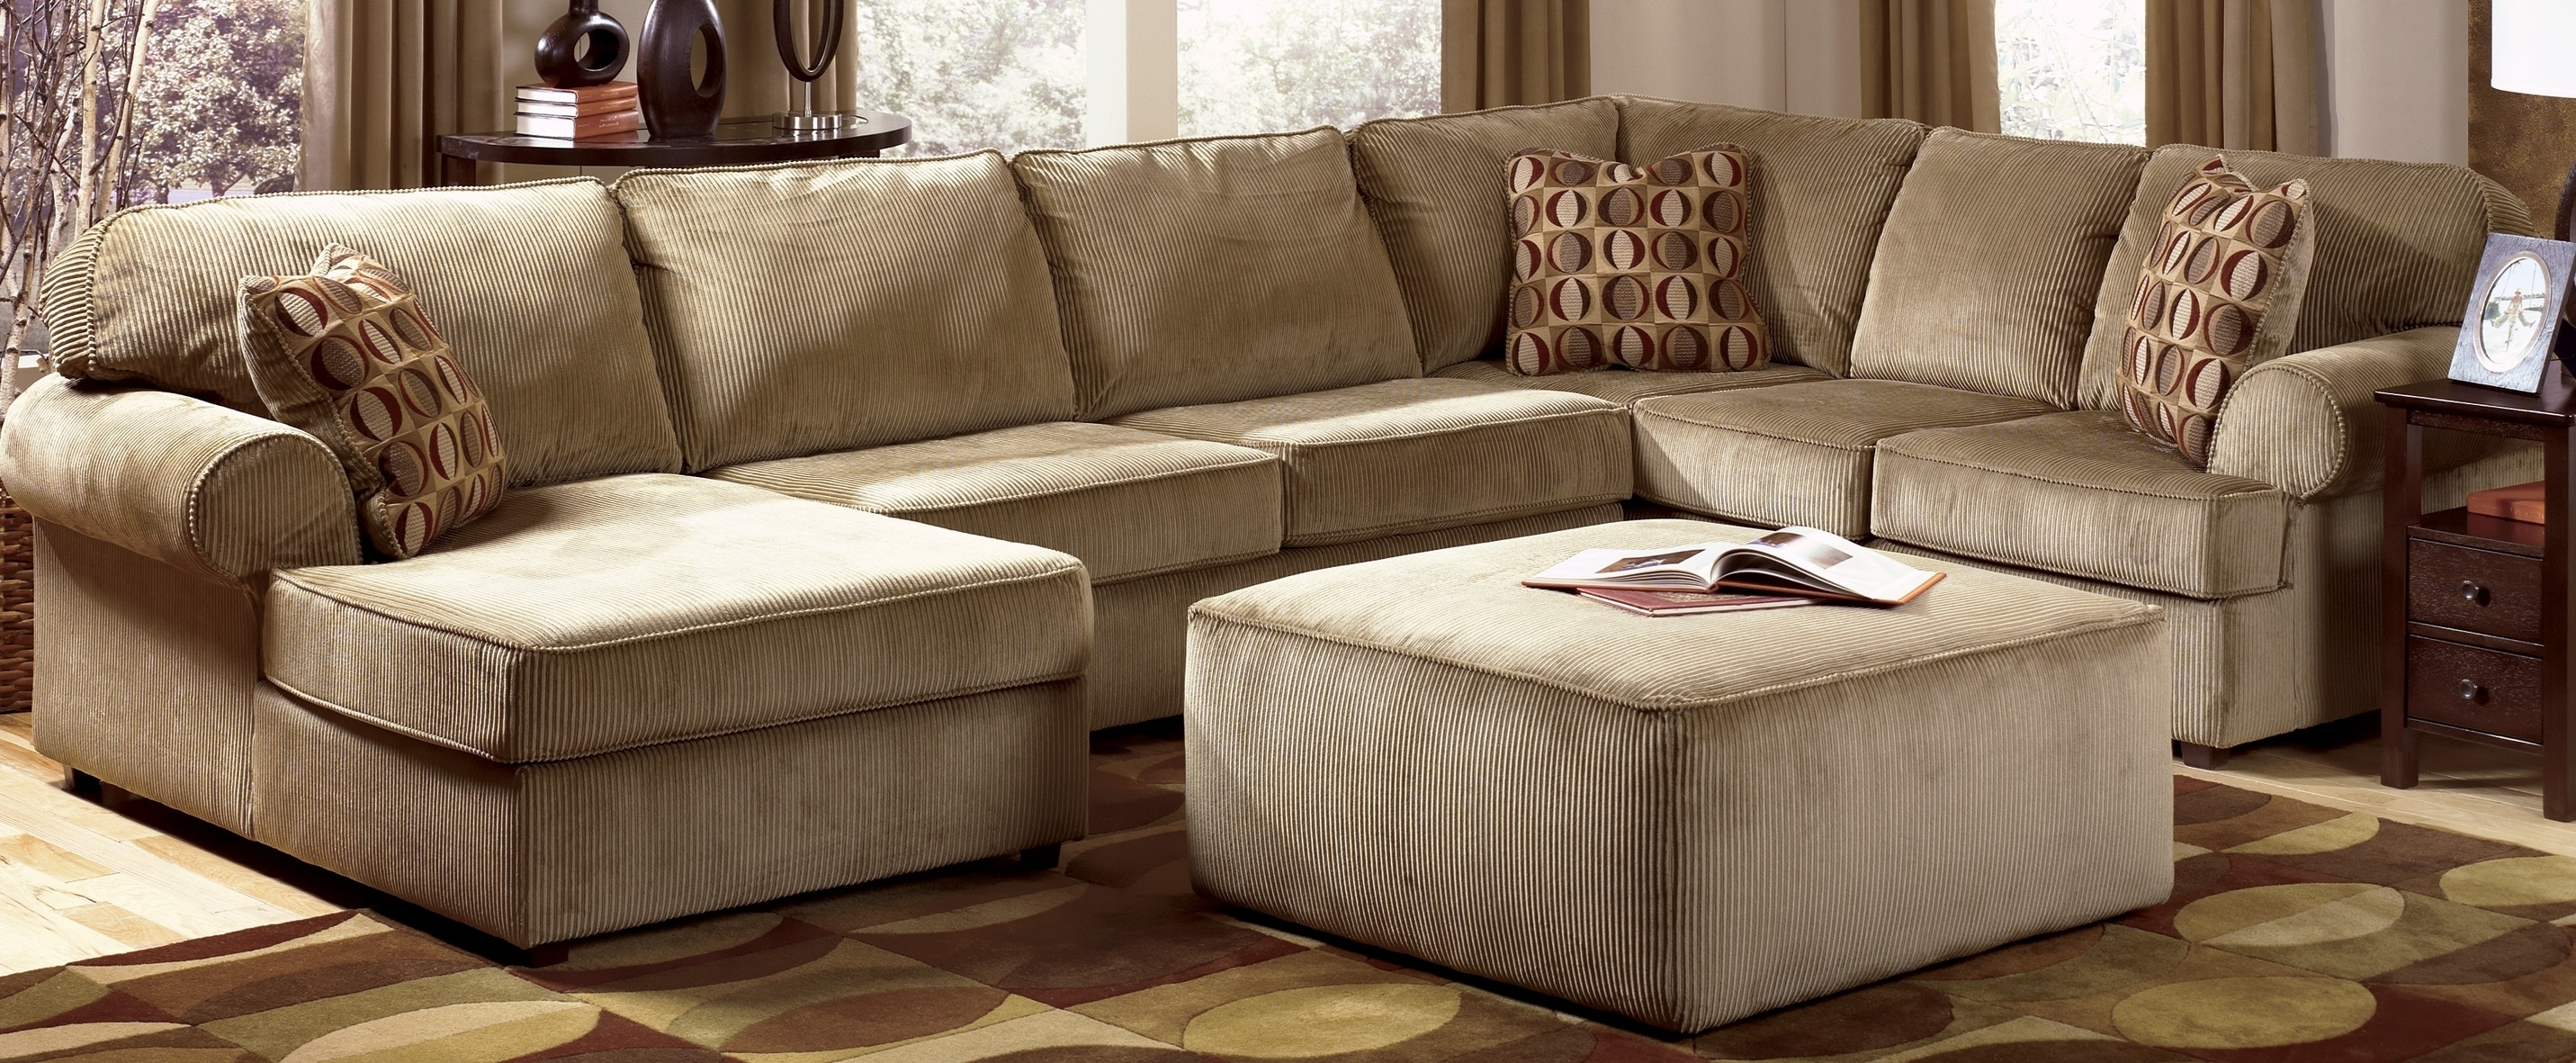 Inexpensive Sectional Sofas For Small Spaces For Favorite Stylish Inexpensive Sectional Sofas For Small Spaces (View 6 of 15)